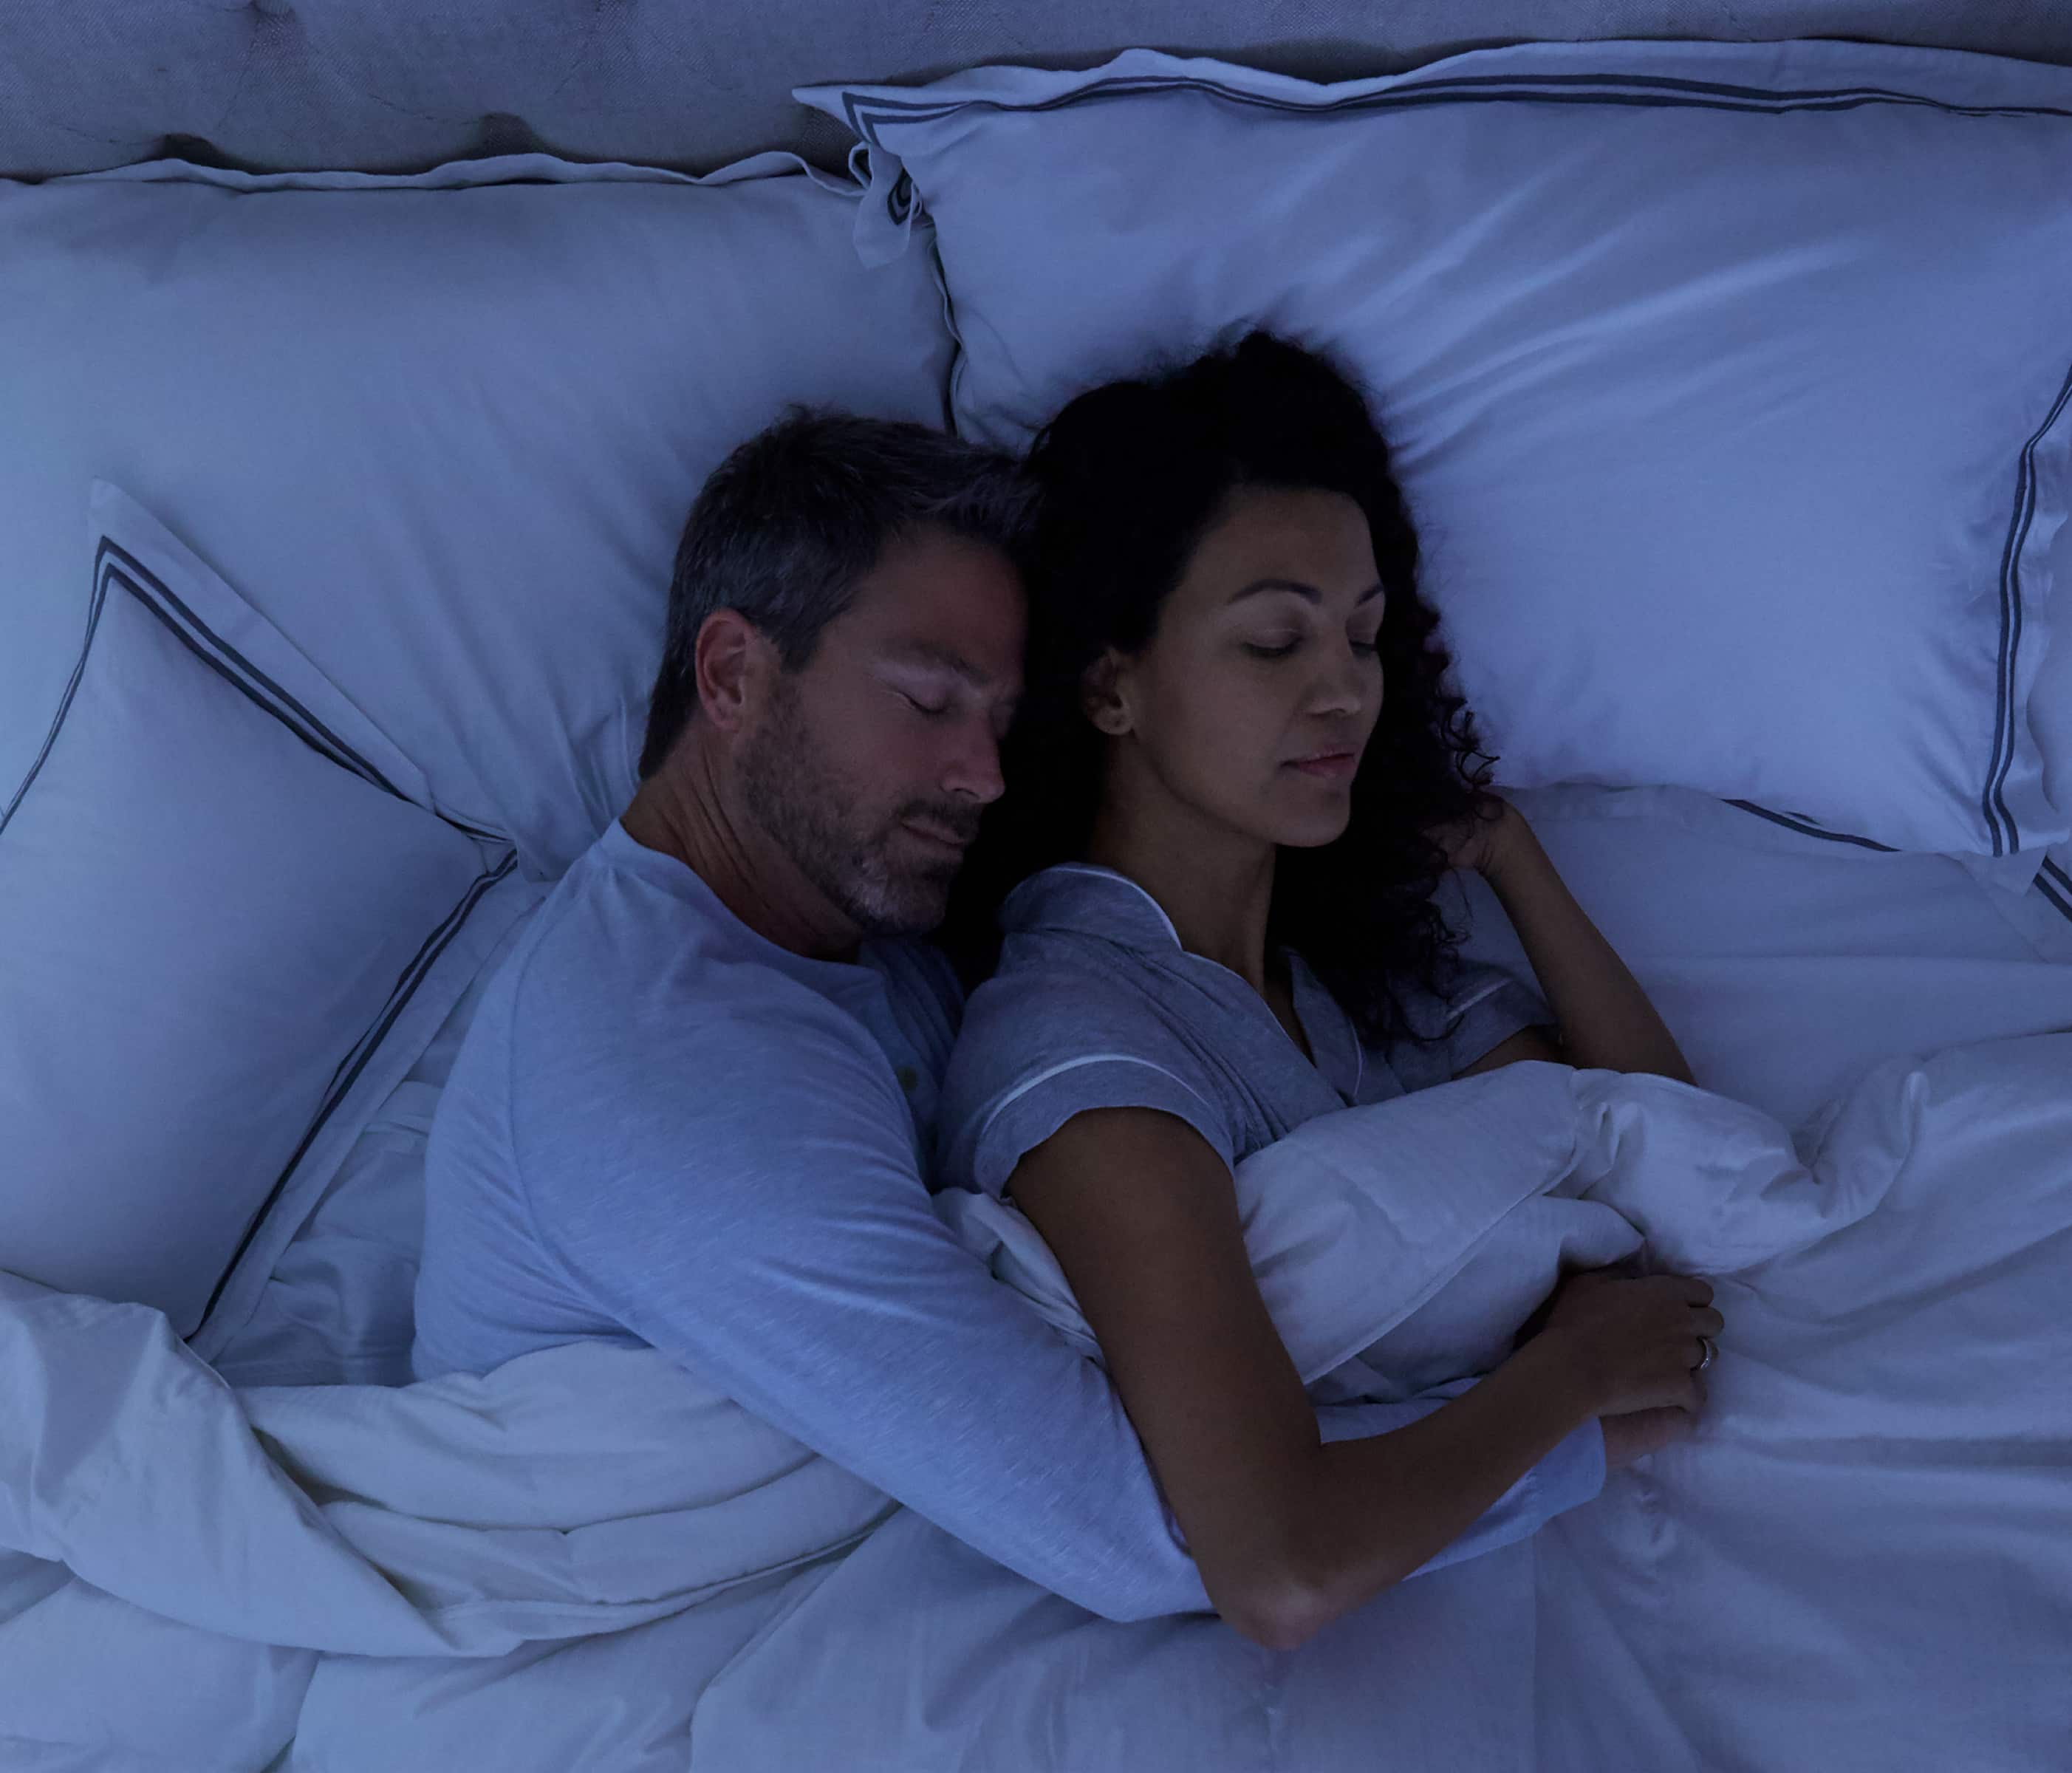 Couple sleeping securely in smart home security